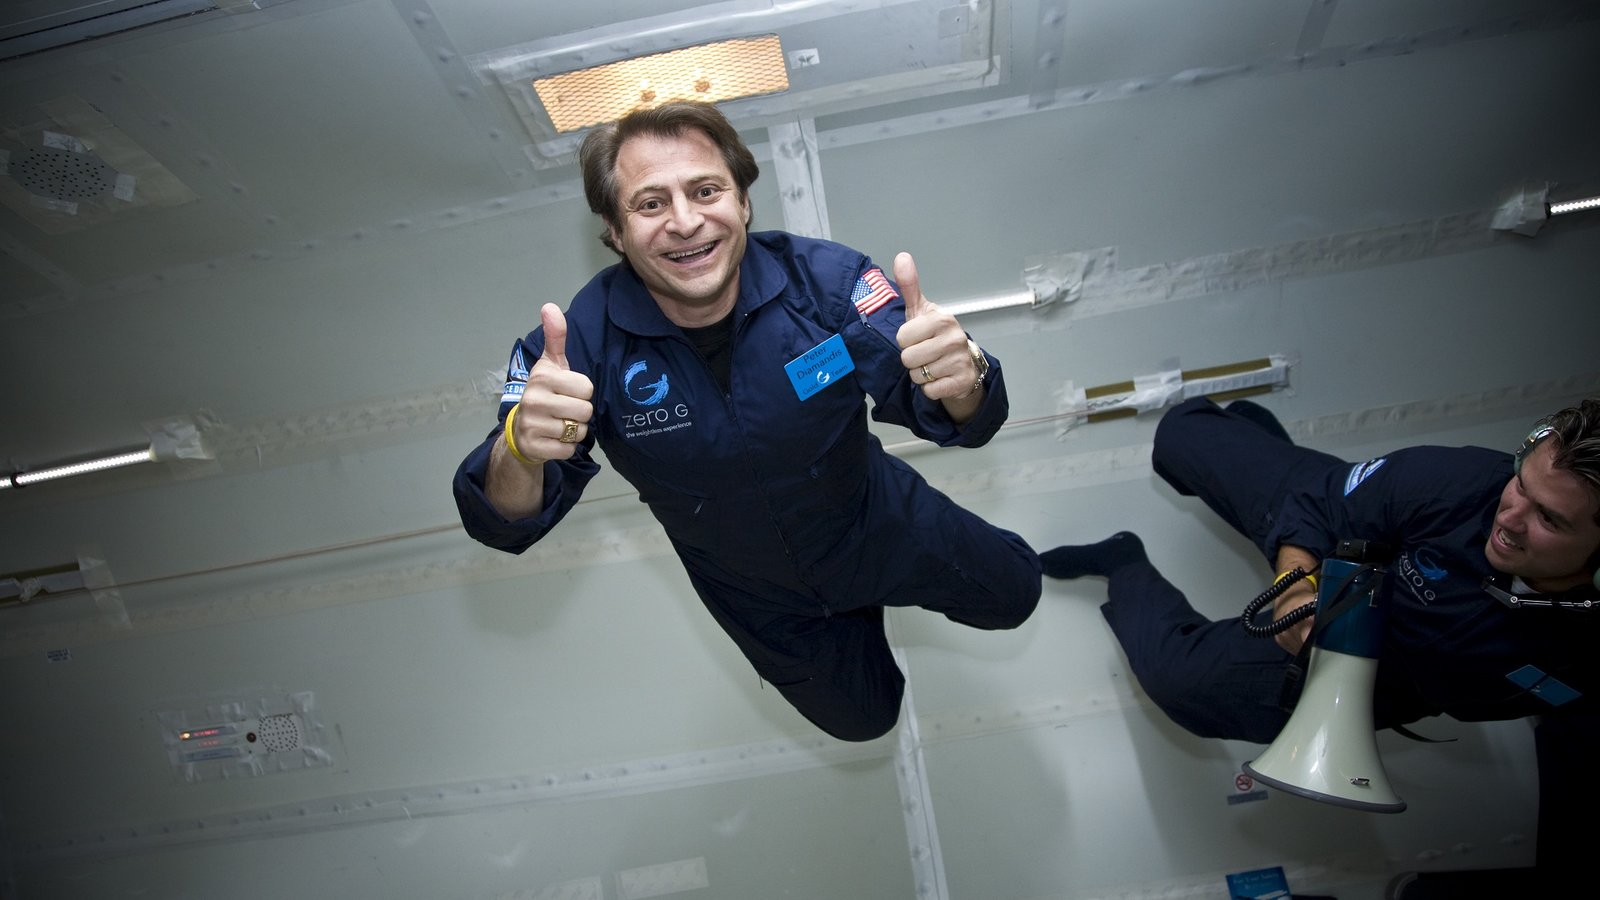 Visioneer: The Story of Peter Diamandis - Behind the $10 Million Space Travel X Prize